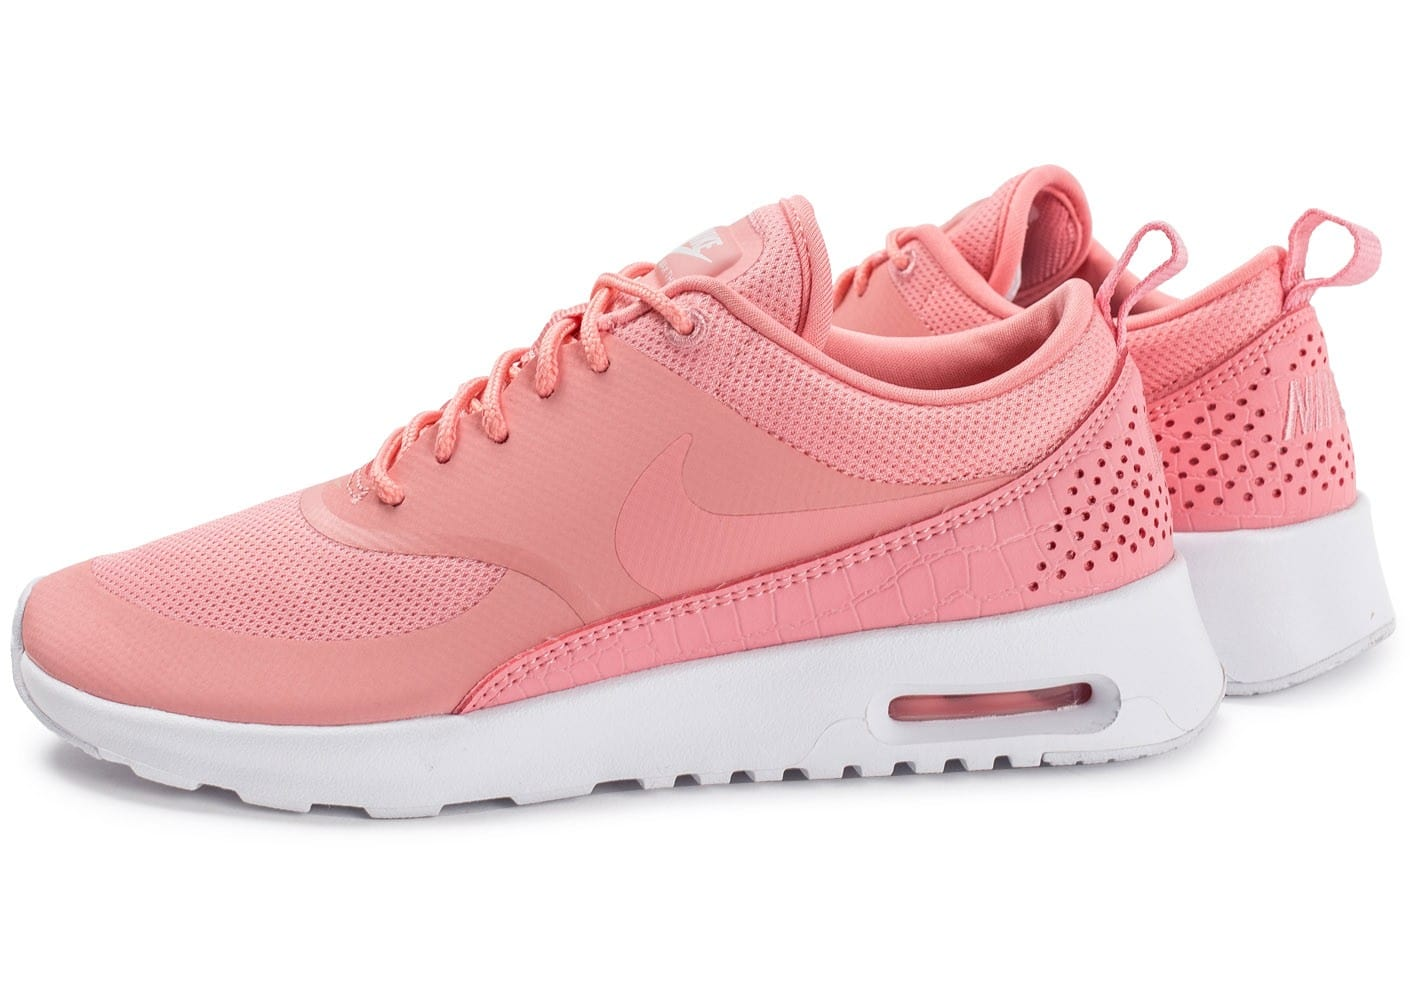 Nike Air Max Thea W rose Chaussures Baskets femme Chausport